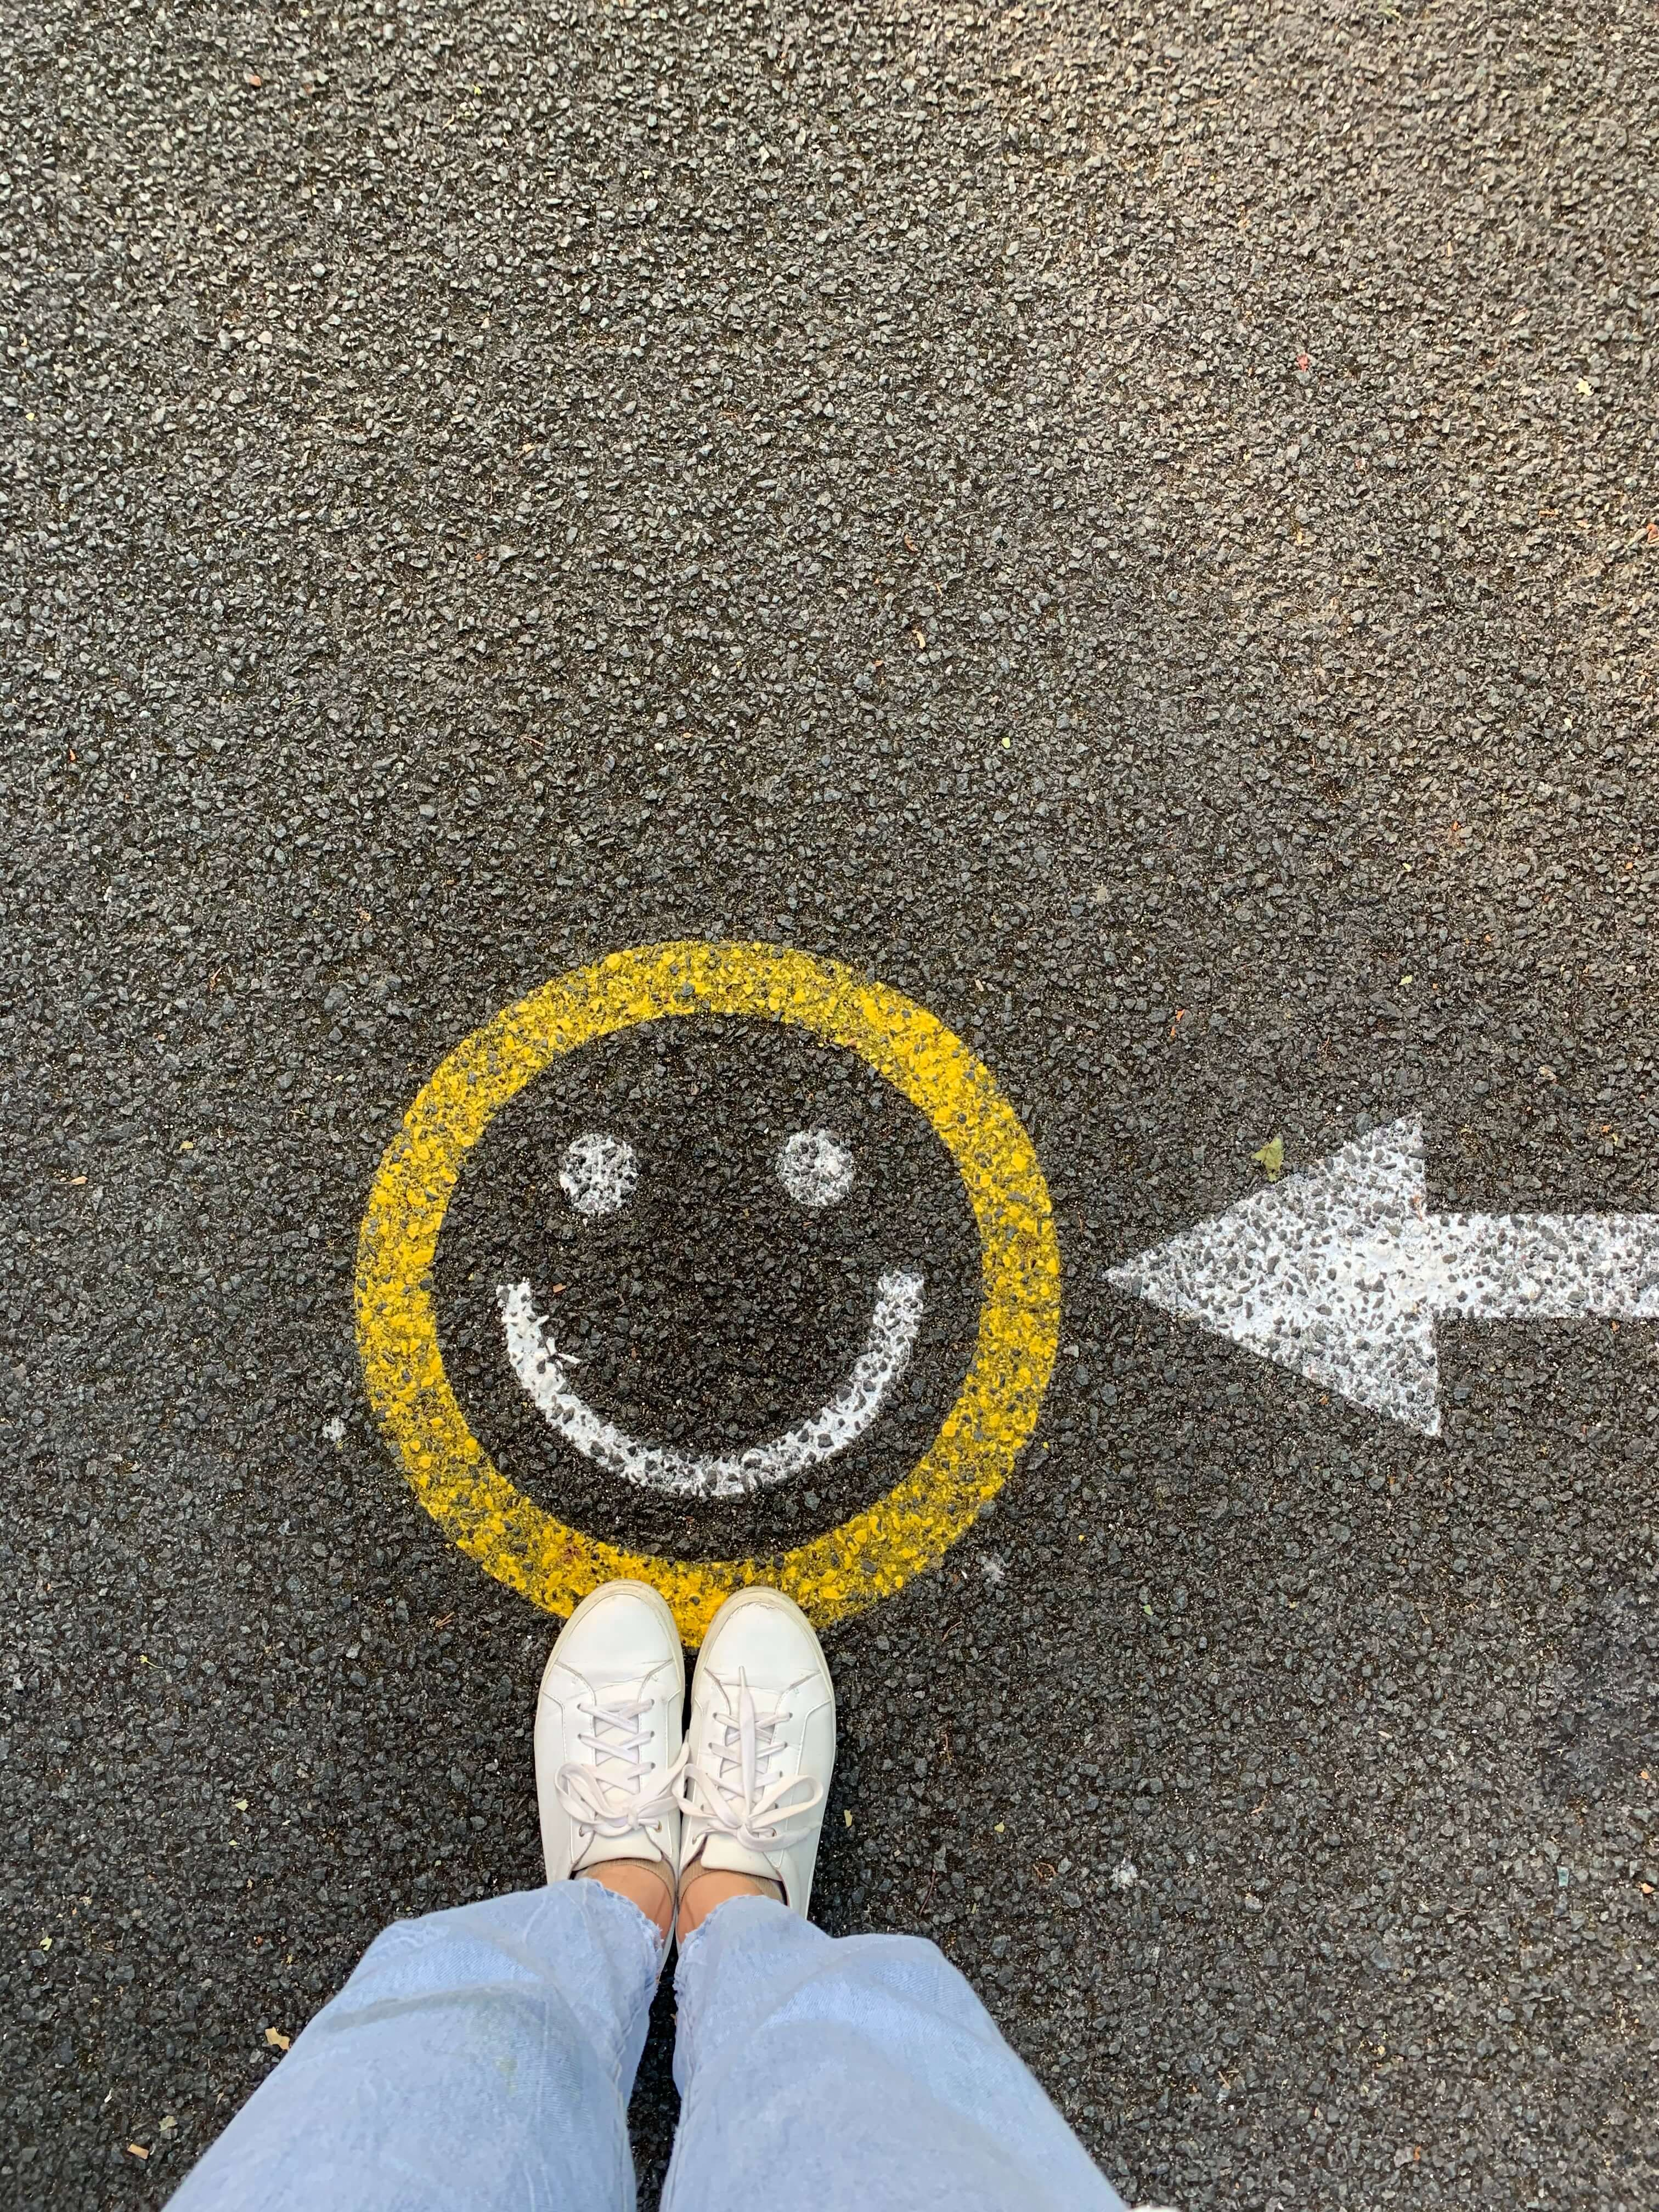 Person with feet pointing towards smiley face on the ground